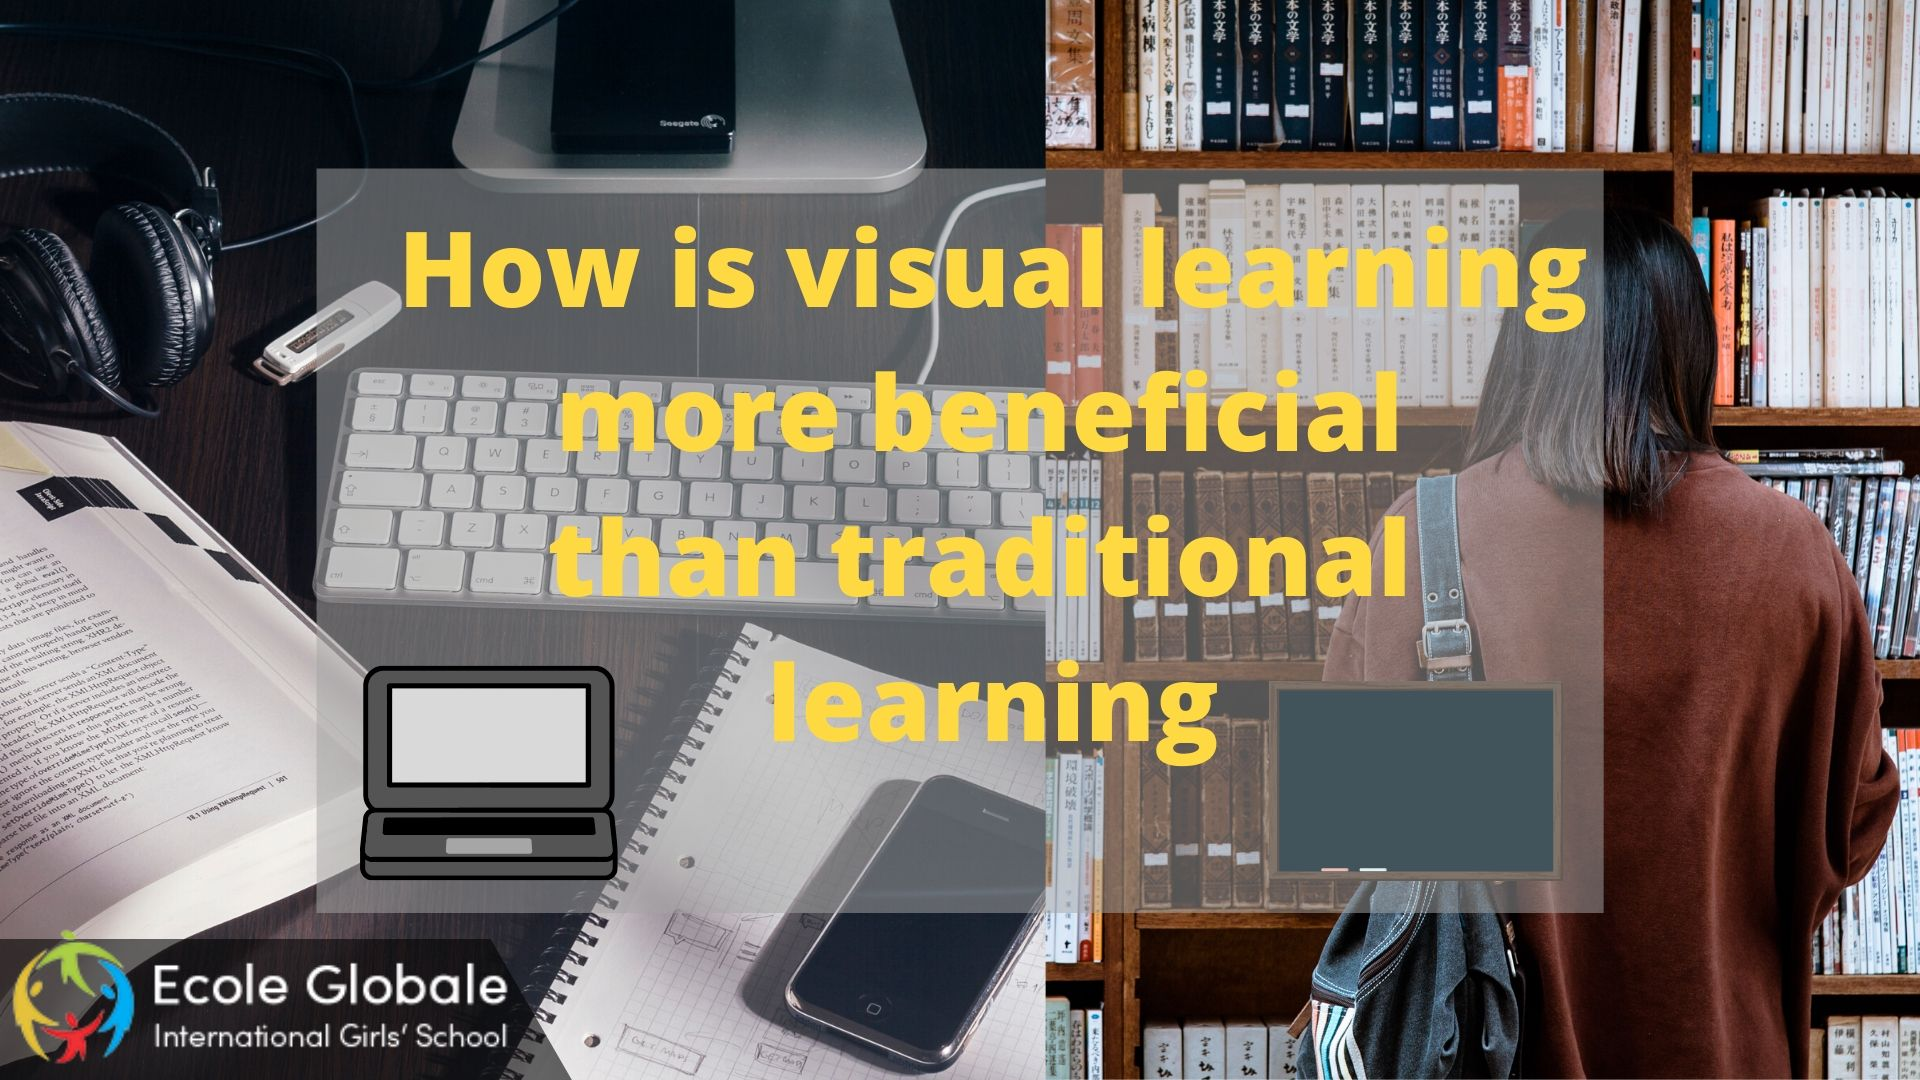 How is visual learning more beneficial than traditional learning